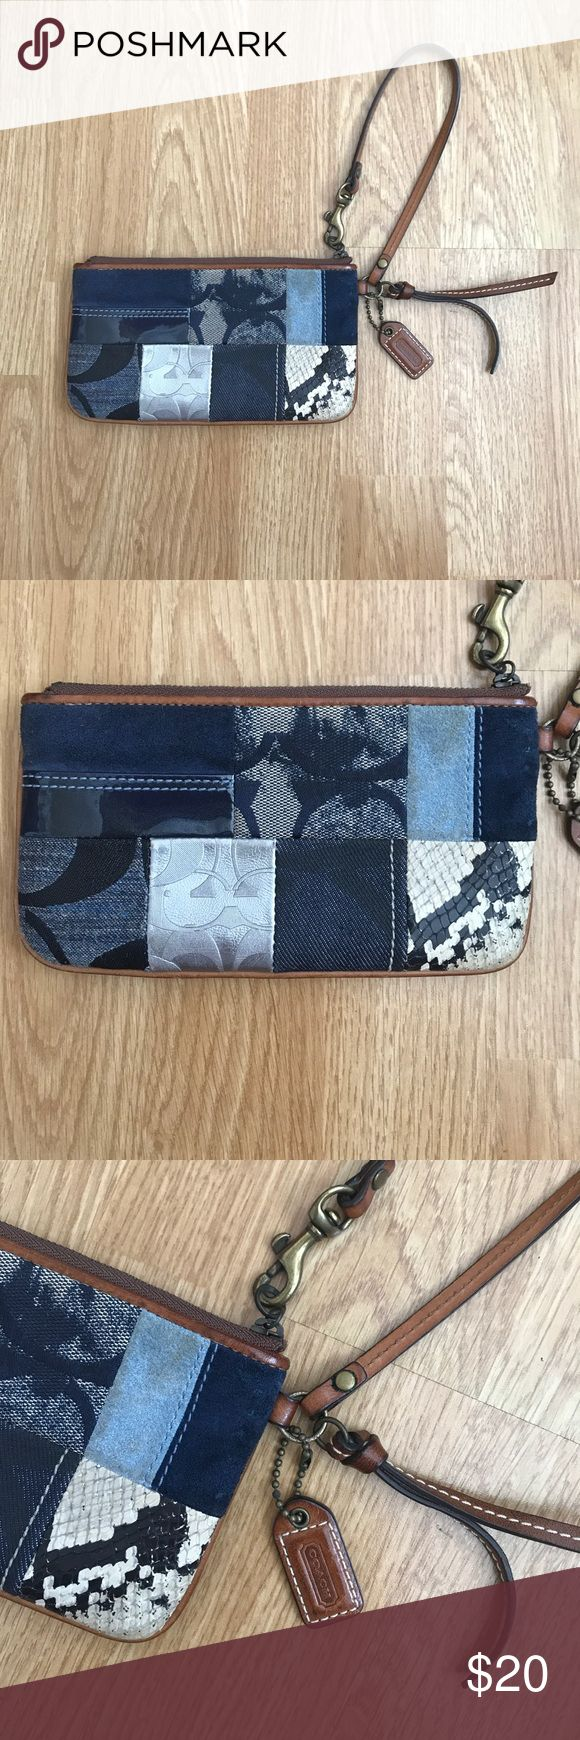 """Coach clutch pouch Good condition. Minor exterior marks (see photo). Dimensions- L 7.25"""" x W 4"""" Coach Bags Clutches & Wristlets"""